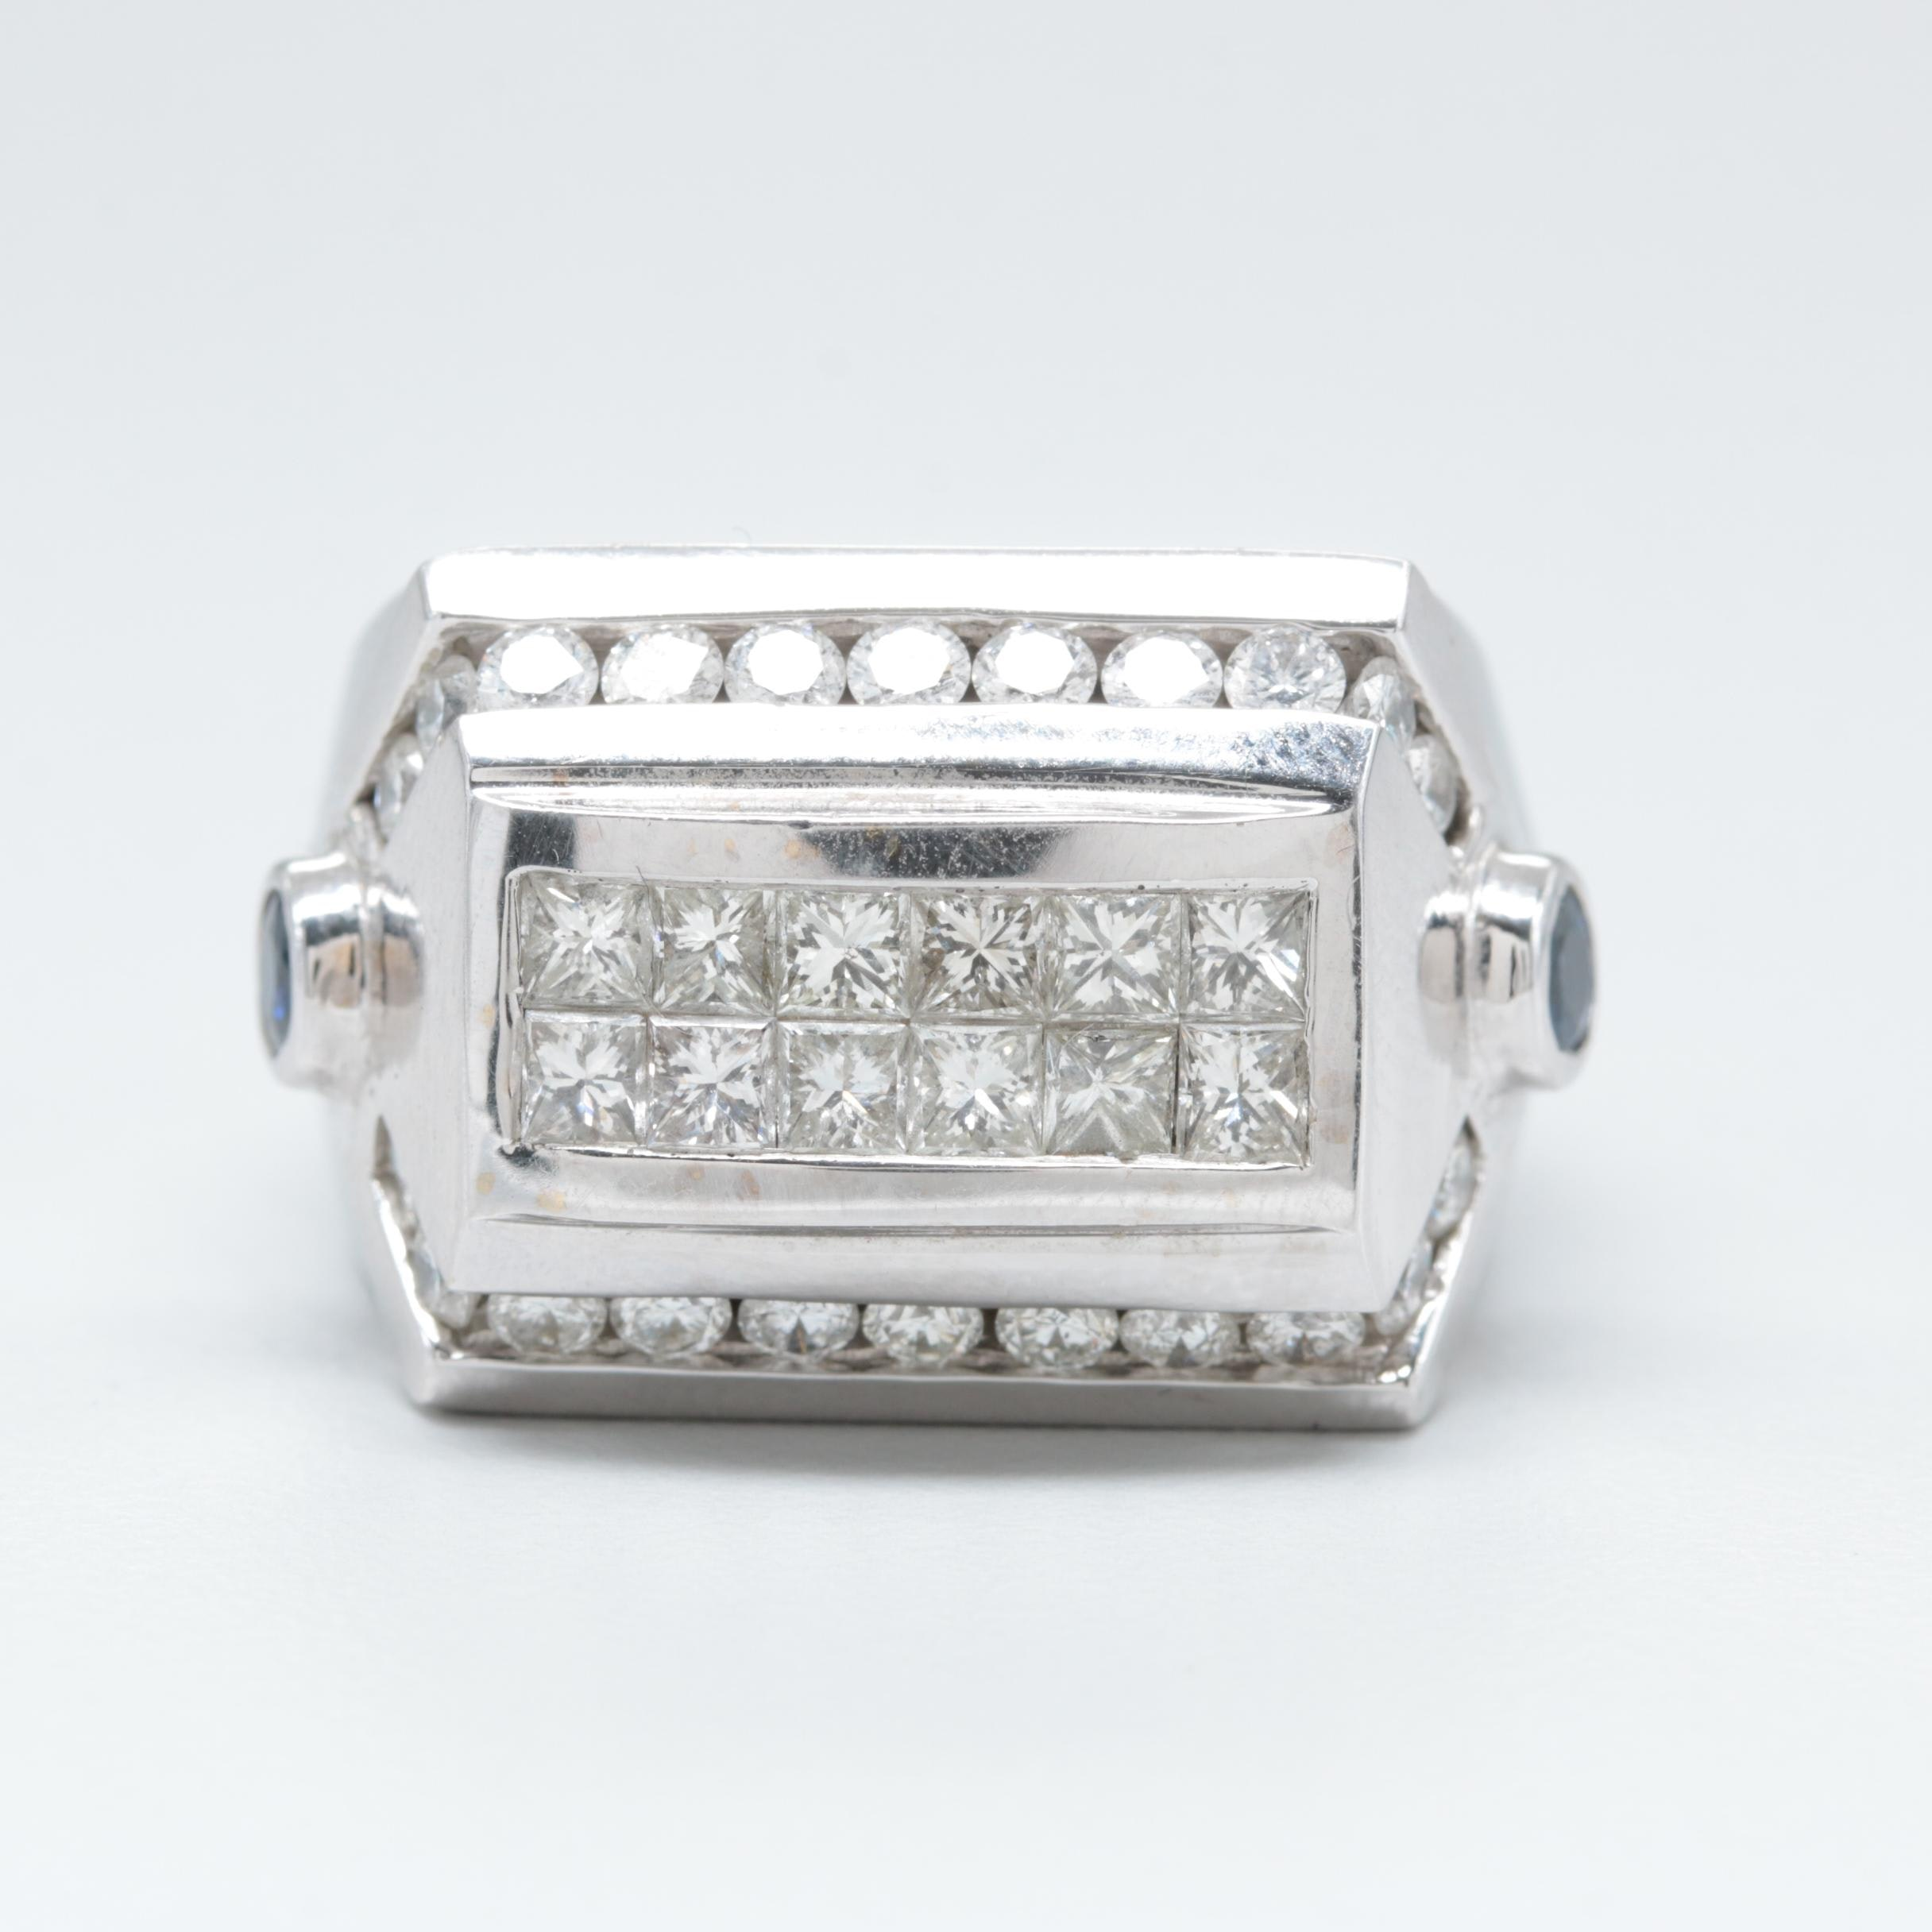 18K White Gold 2.66 CTW Diamond and Sapphire Ring